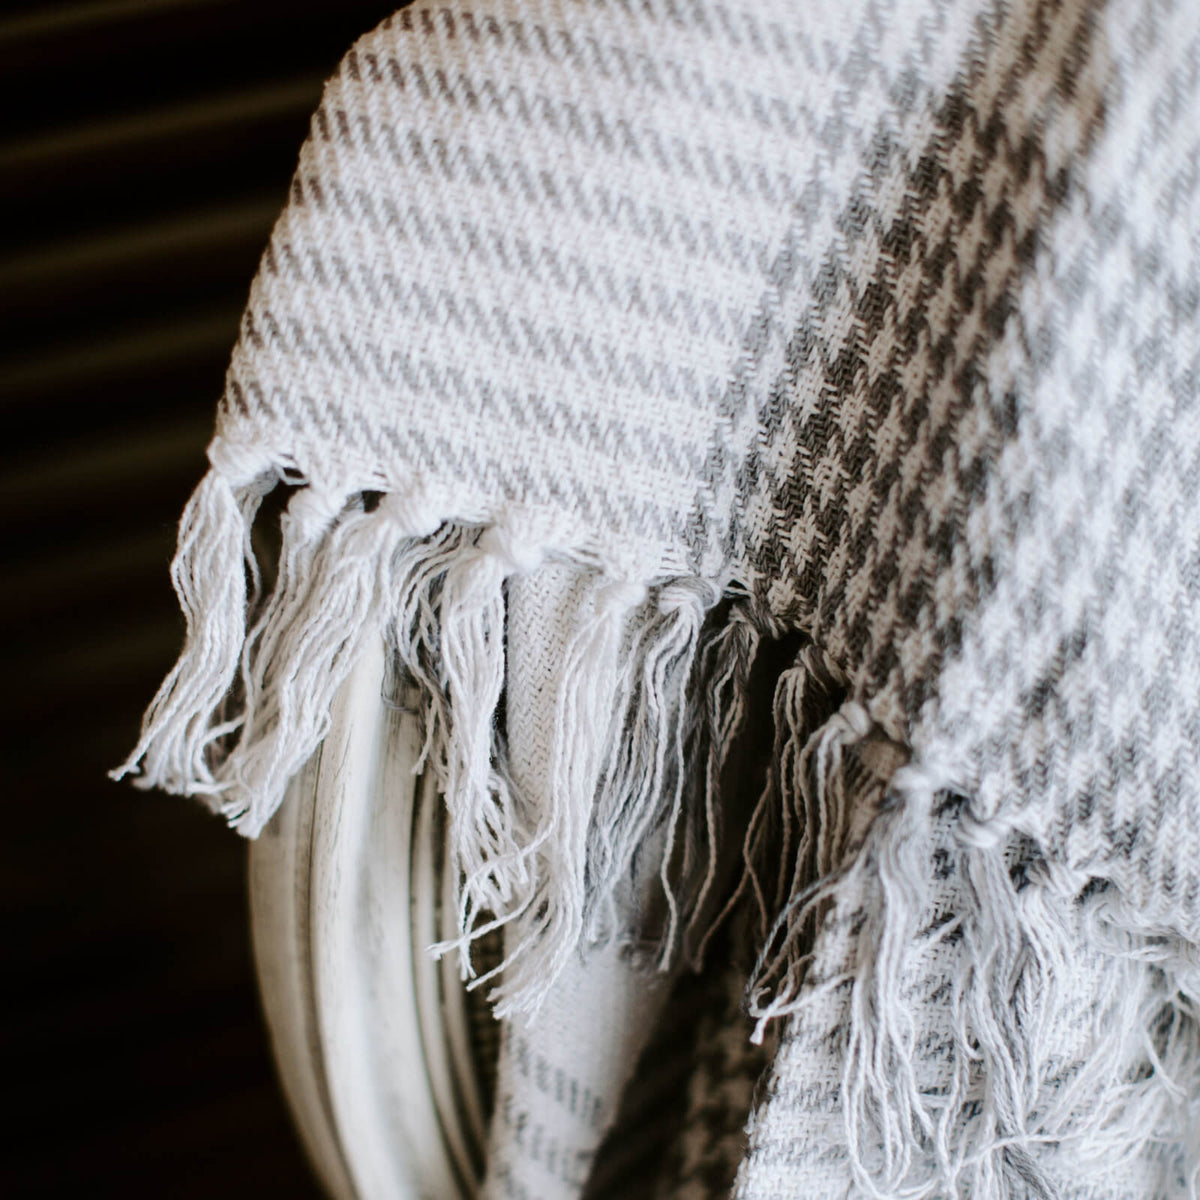 close up detail of a Gray and white houndstooth throw with tassel ends draped over a chair